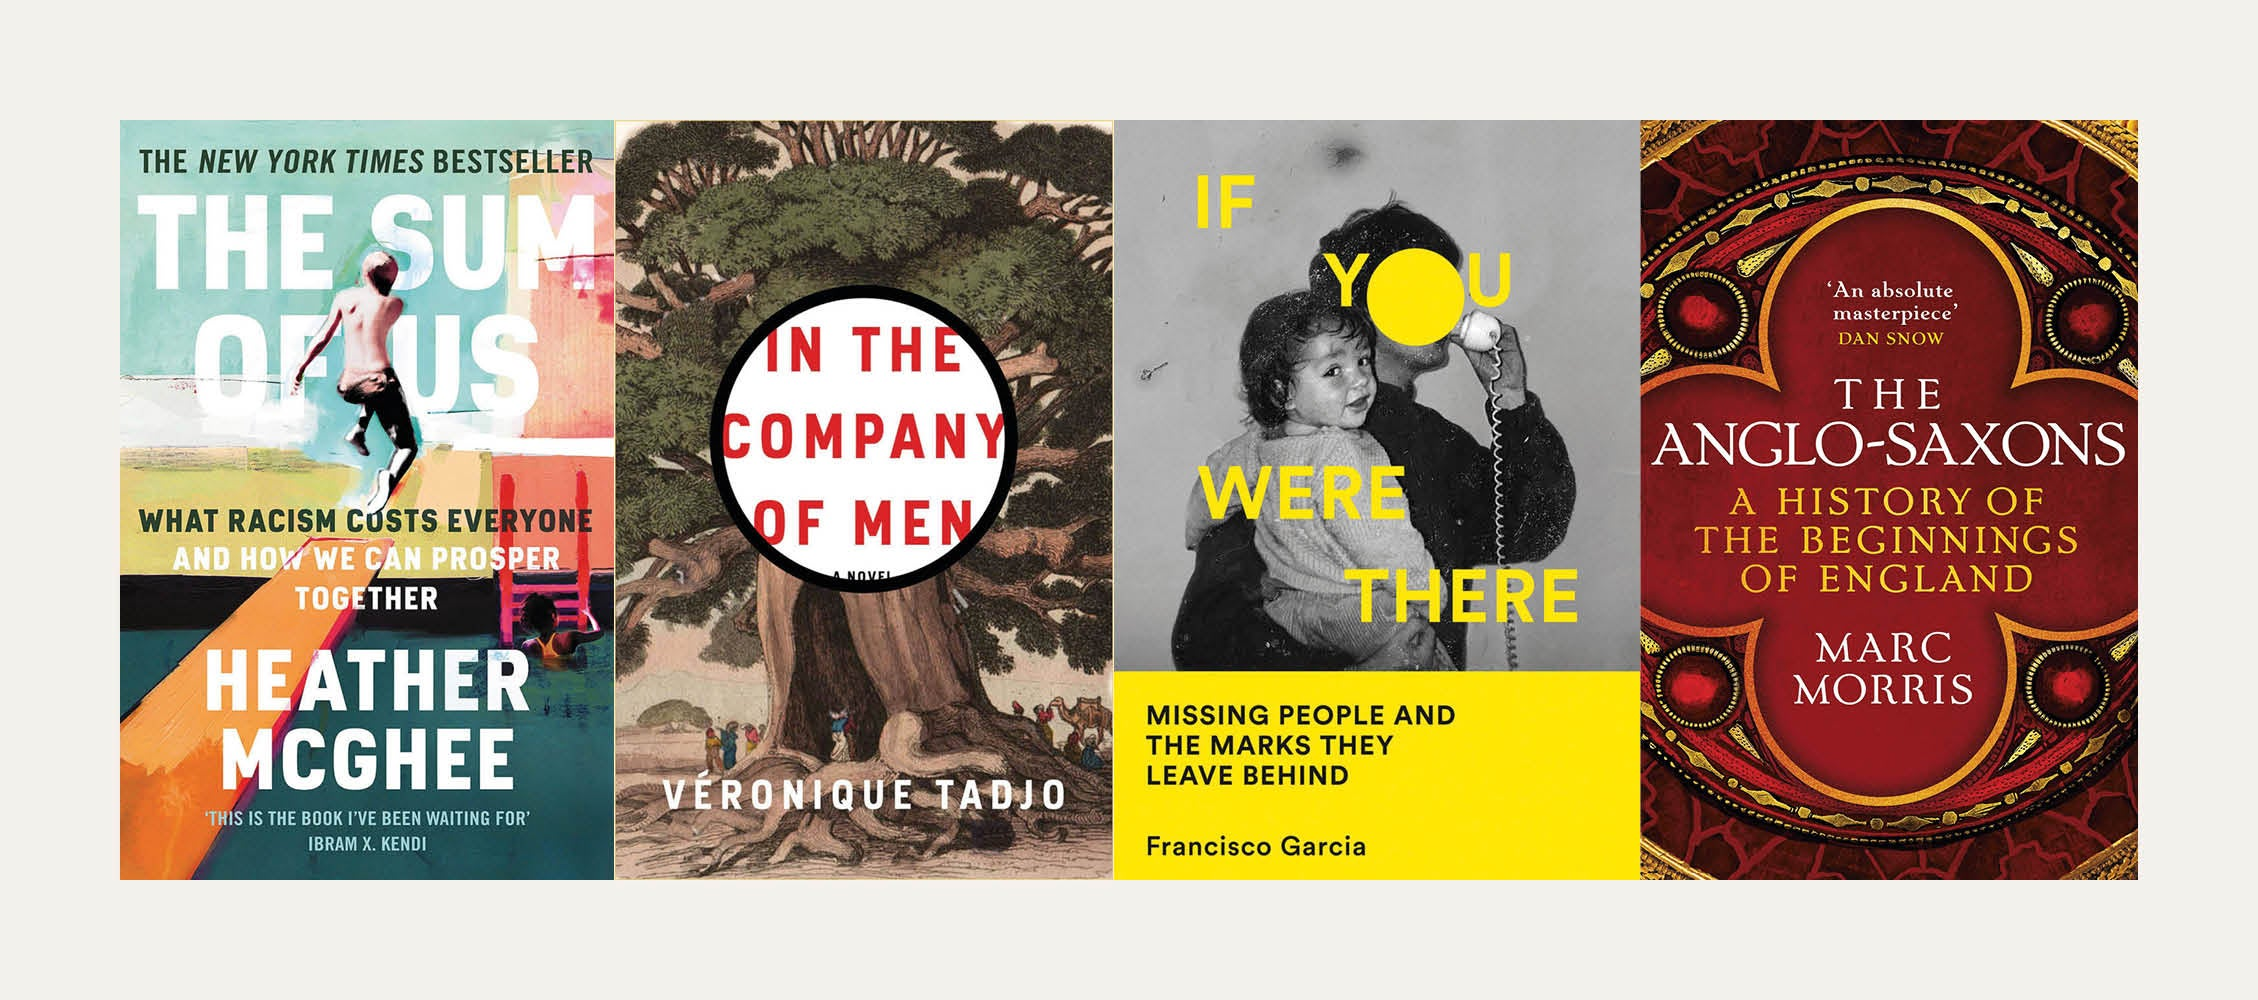 Reviewed in short: New books by Heather McGhee, Marc Morris, Véronique Tadjo and Francisco Garcia